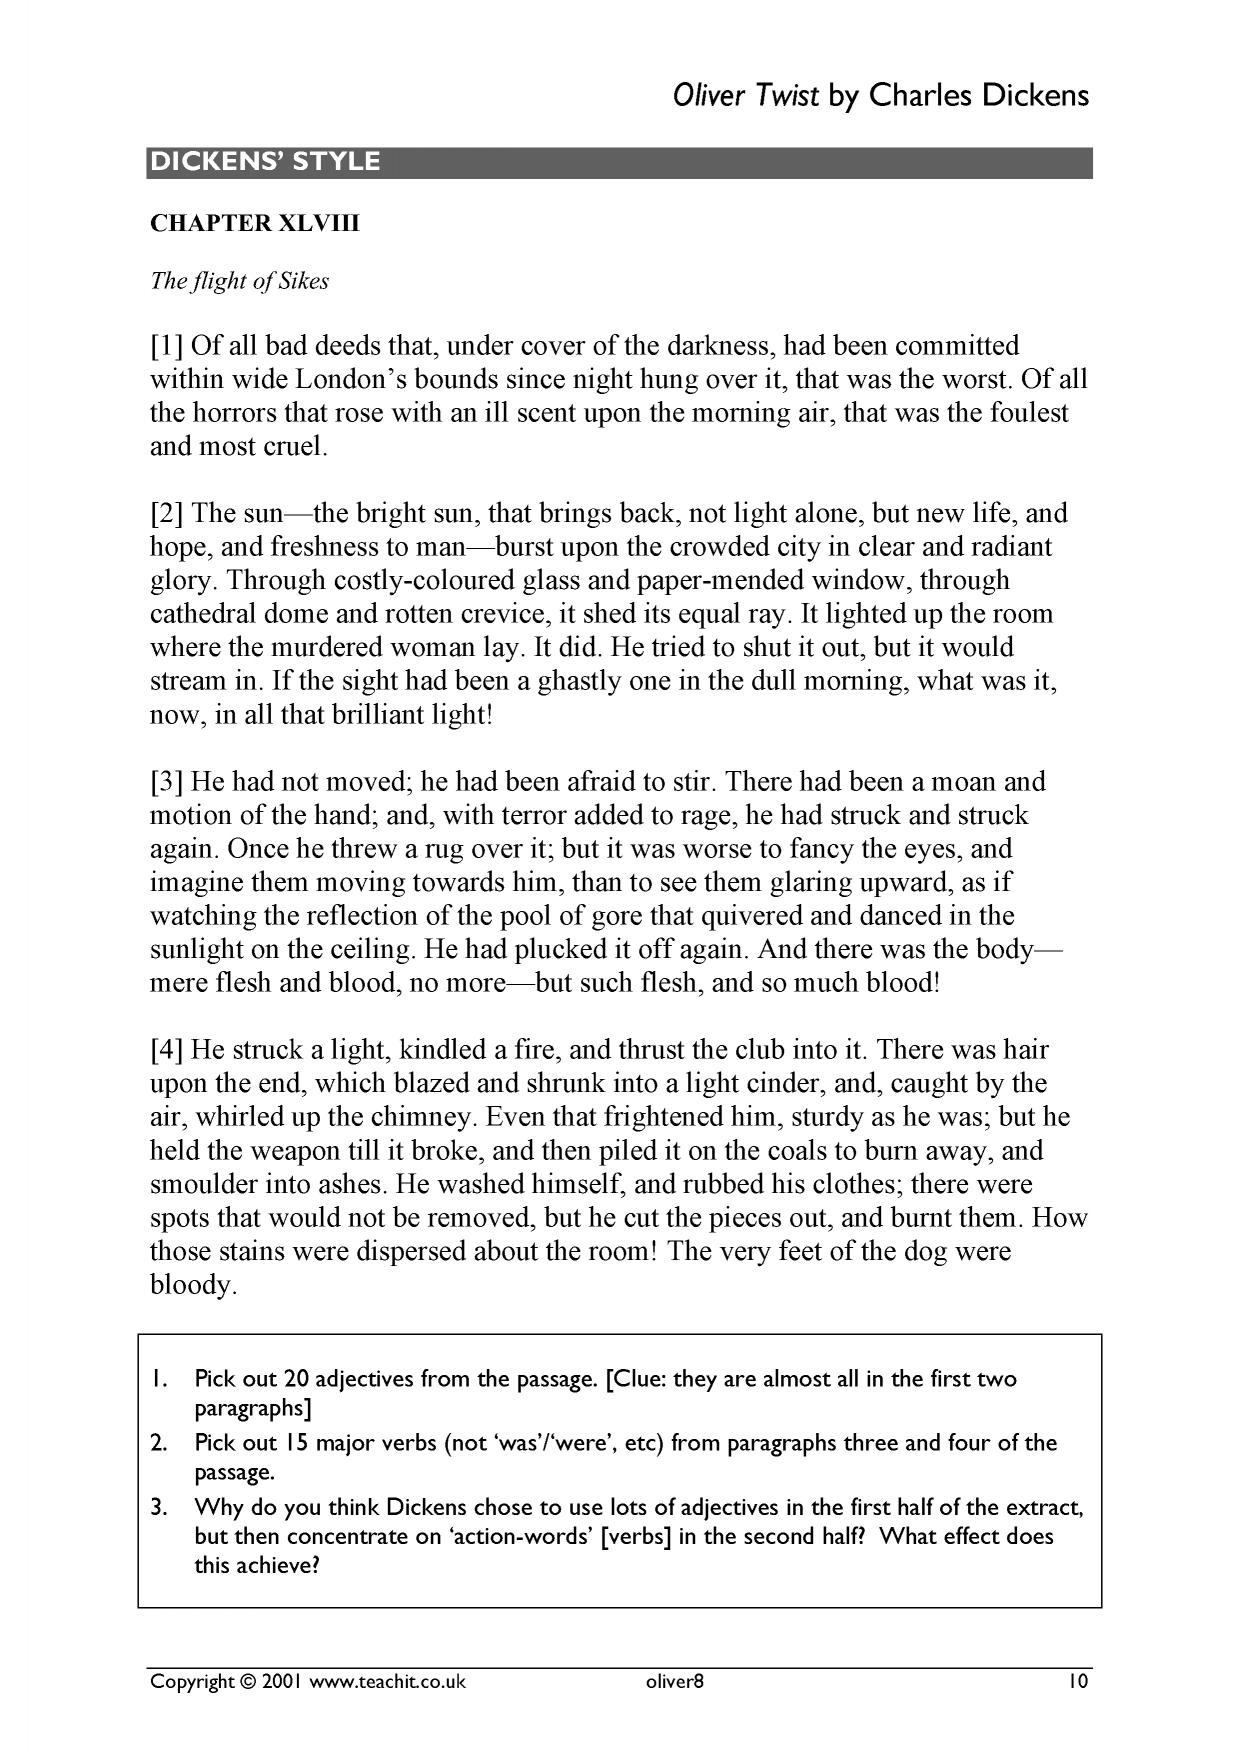 essays on oliver twist Stuck writing a oliver twist essay we have many oliver twist example essays that answers many essay questions in oliver twist.